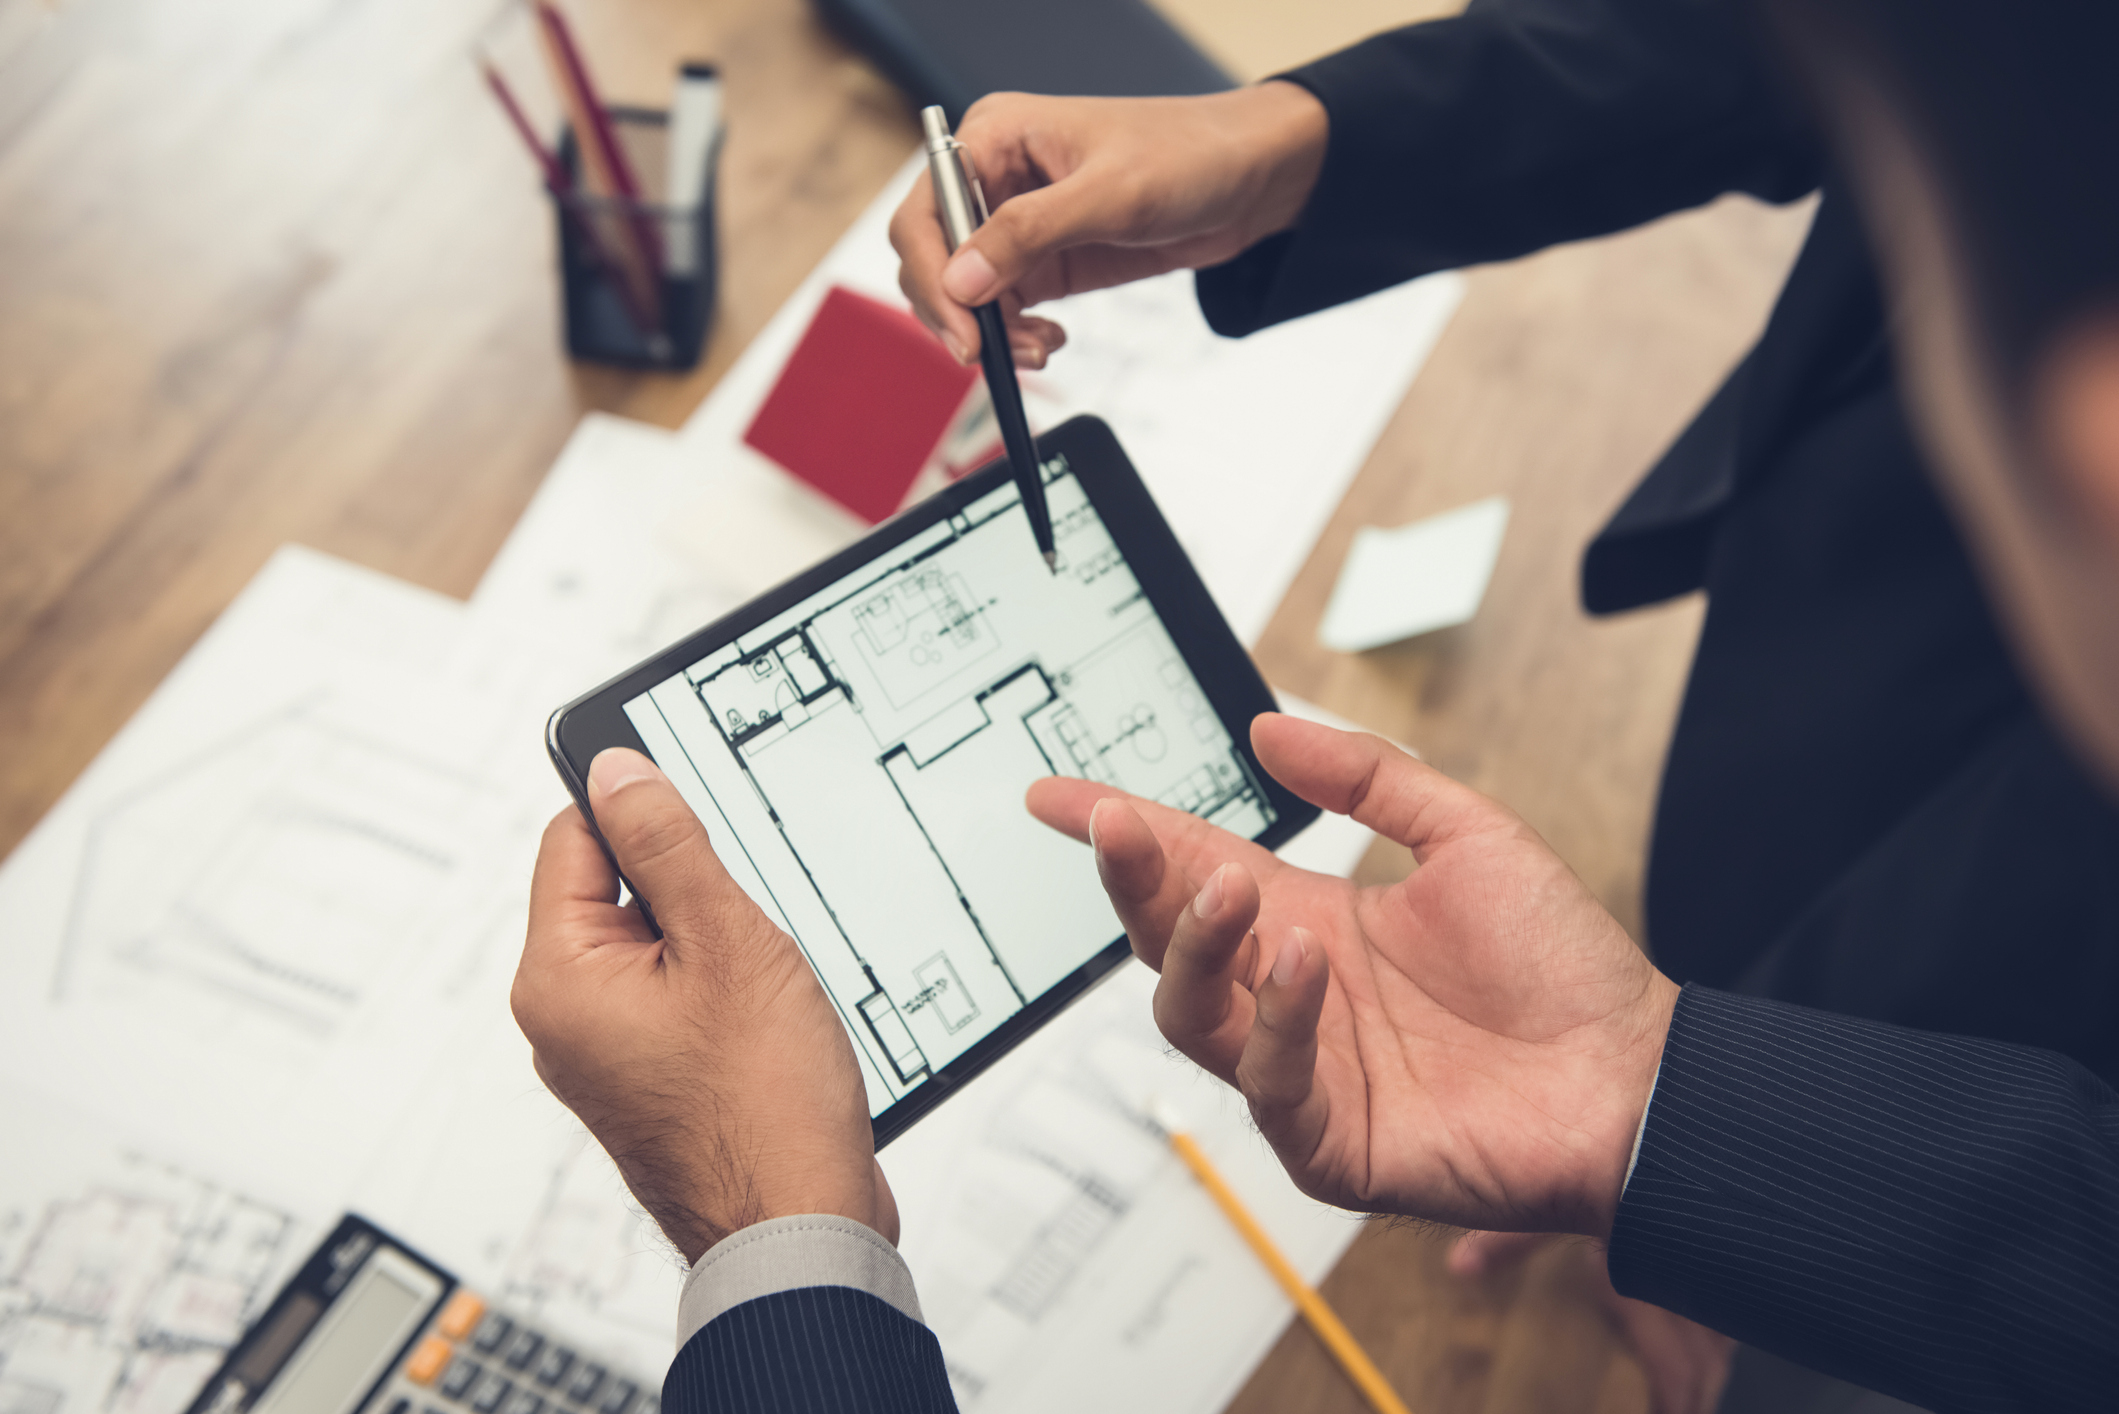 Stock photo of iPad with blueprints on the screen